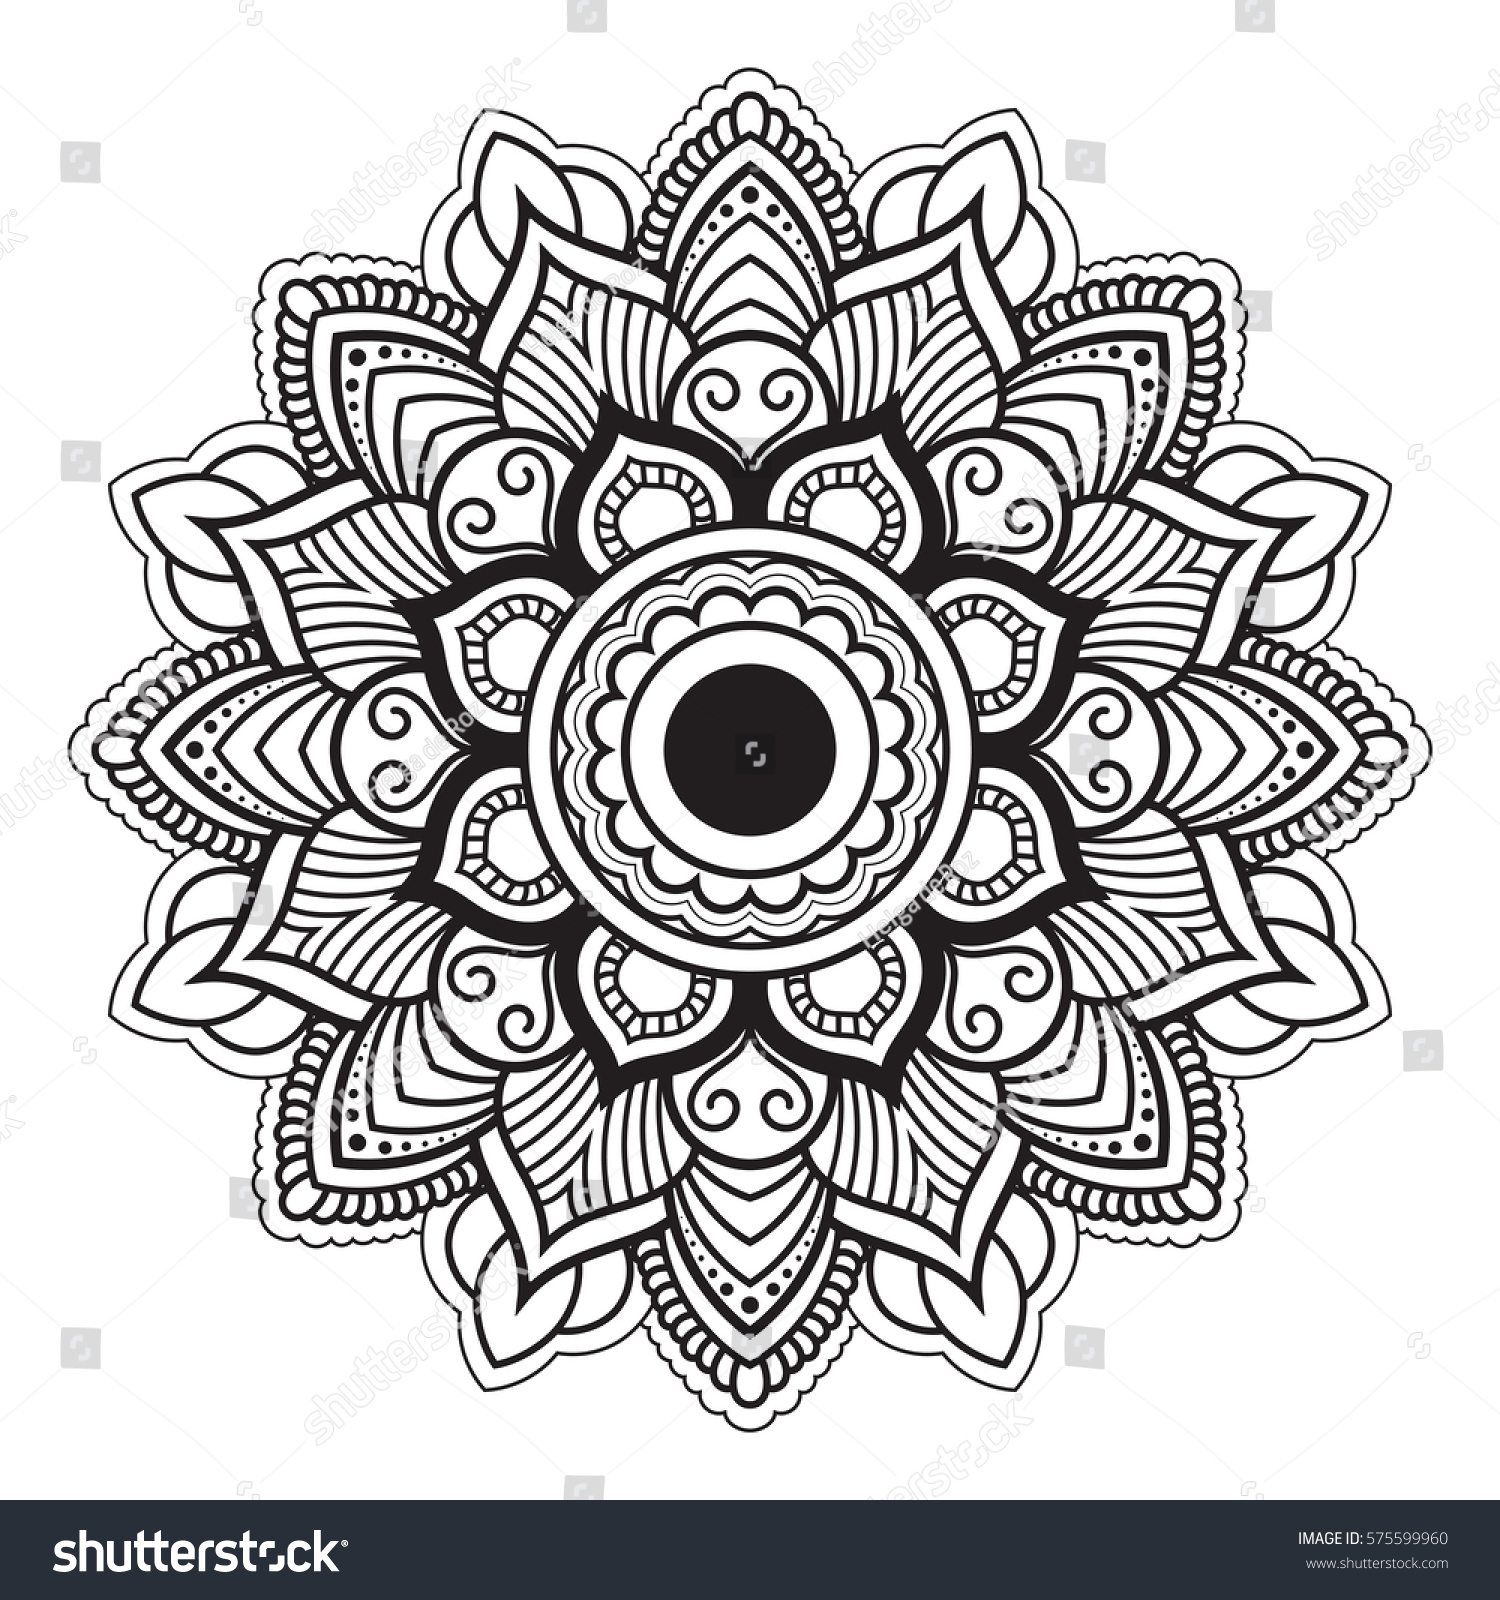 Line Art Poster Design : Mandala line art antistress coloring book stock vector